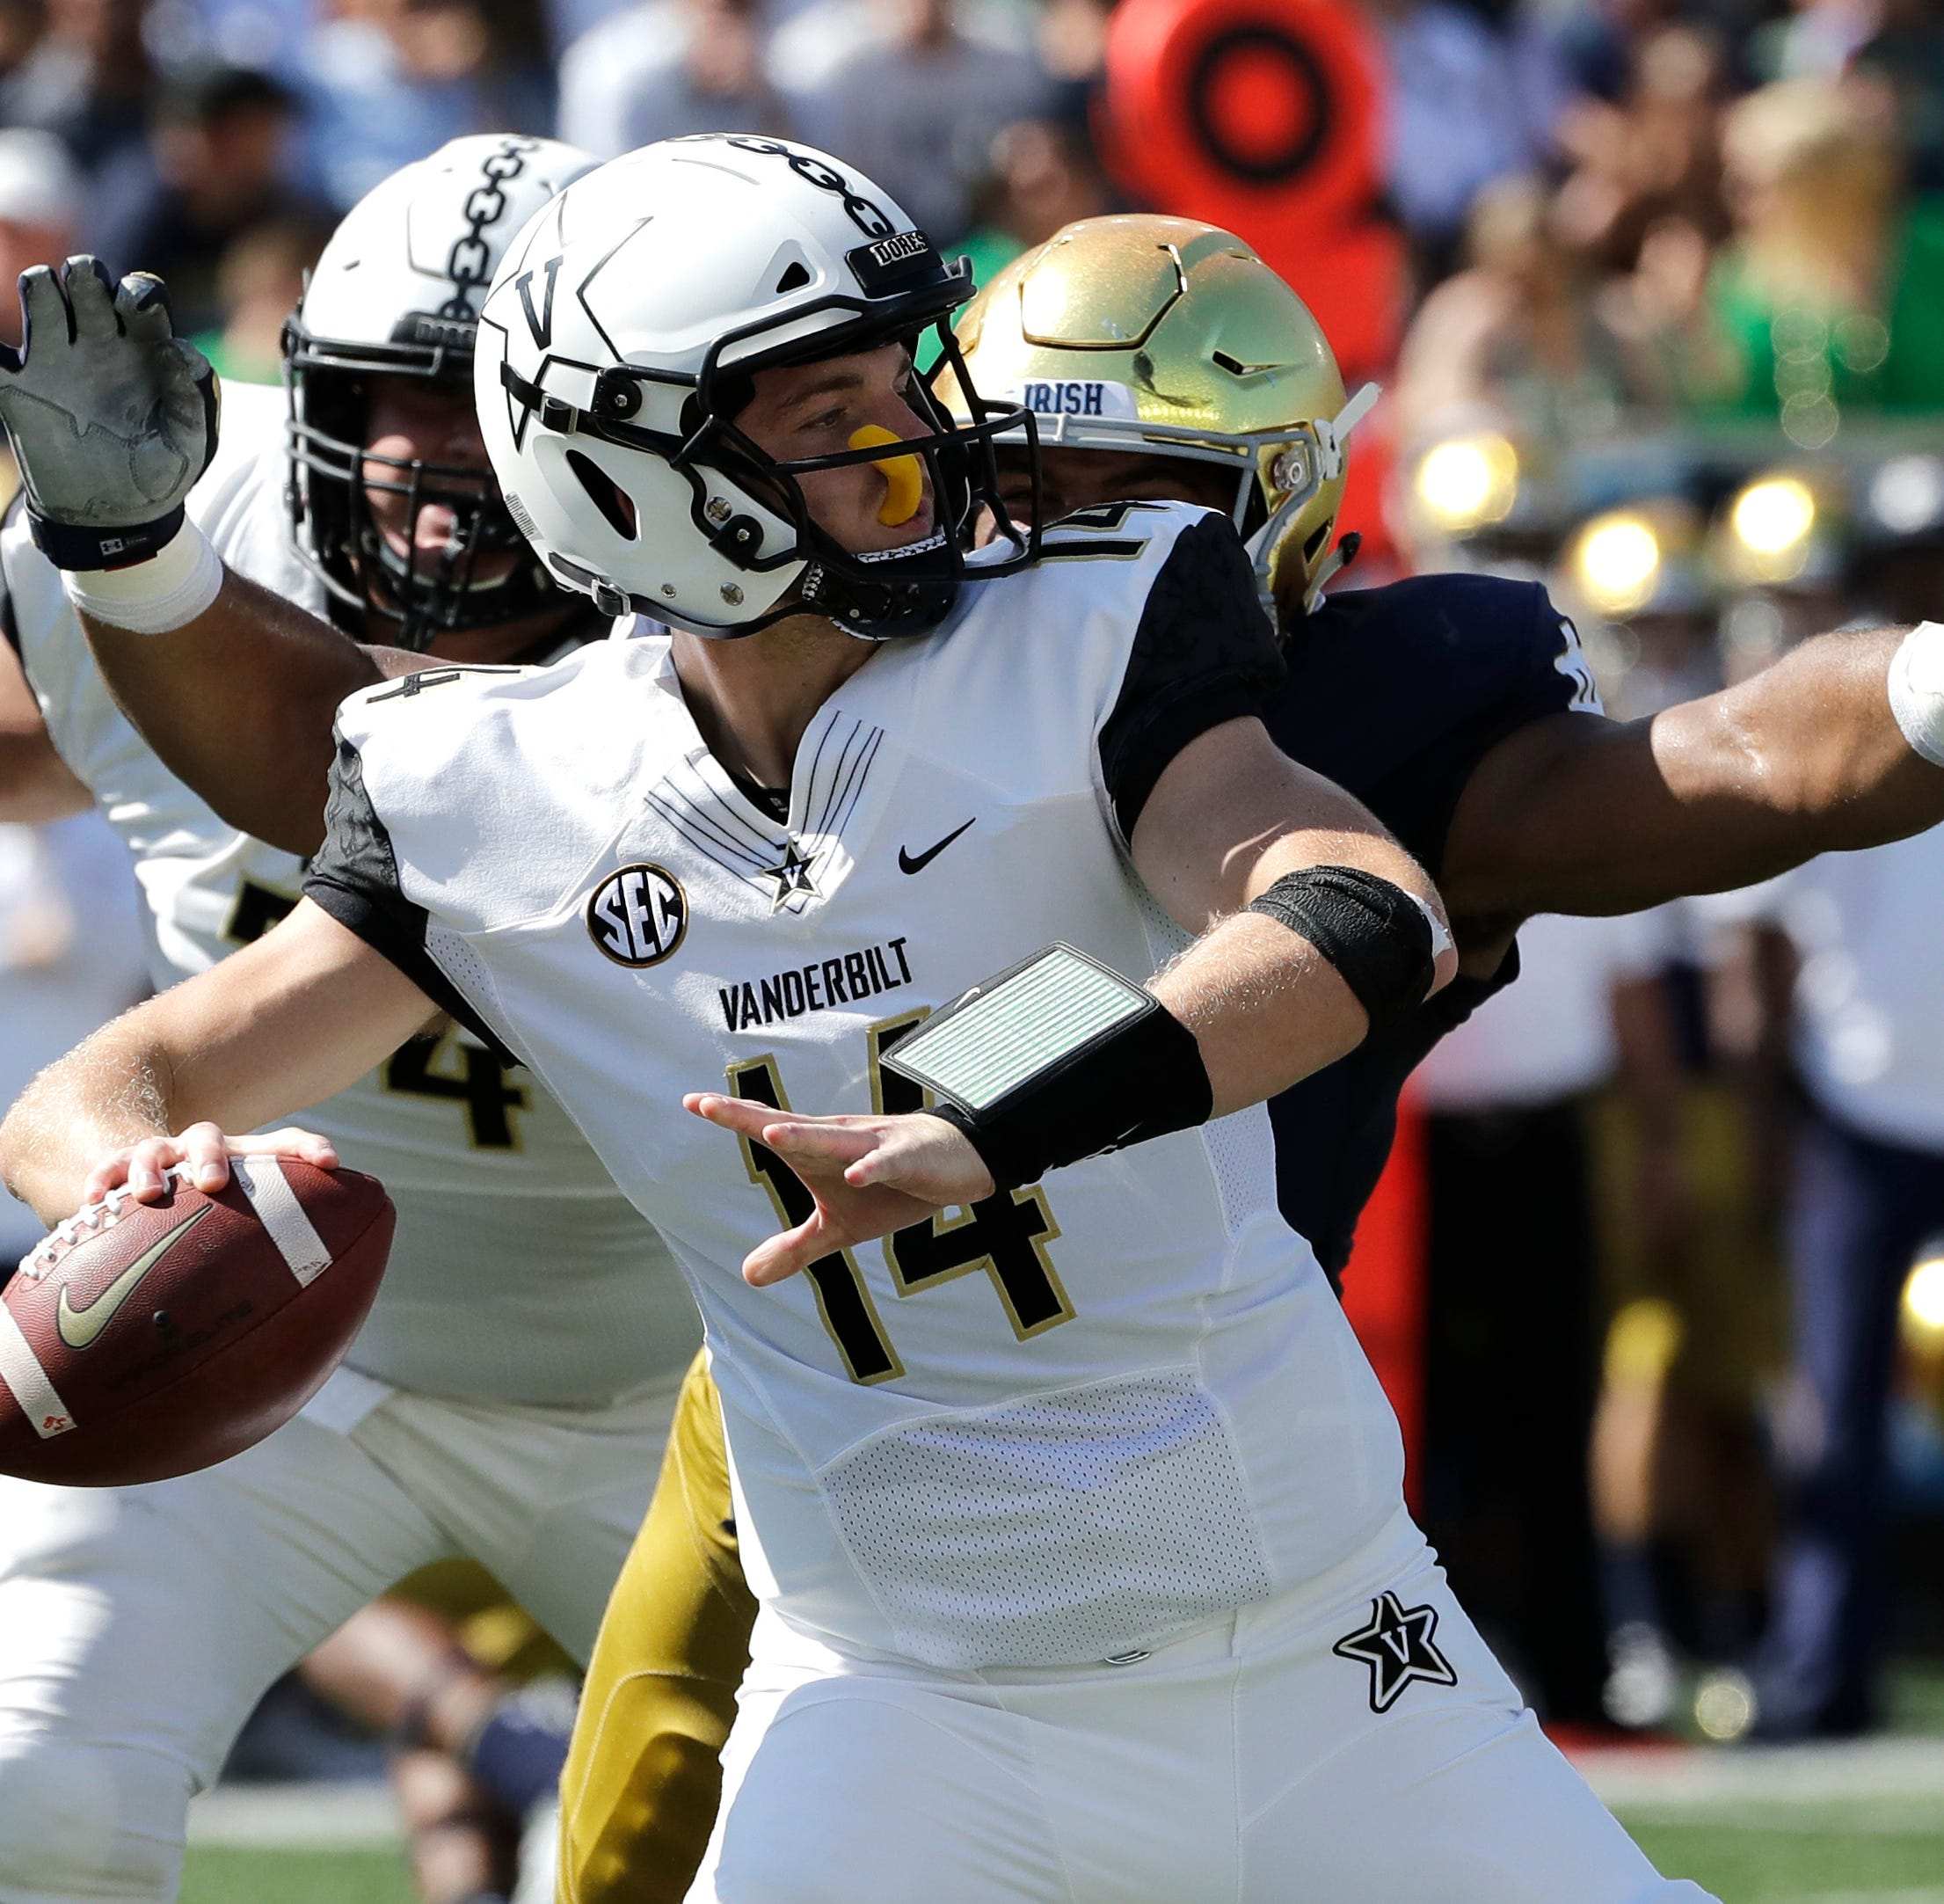 Predictions: Vanderbilt will snap losing streak to South Carolina